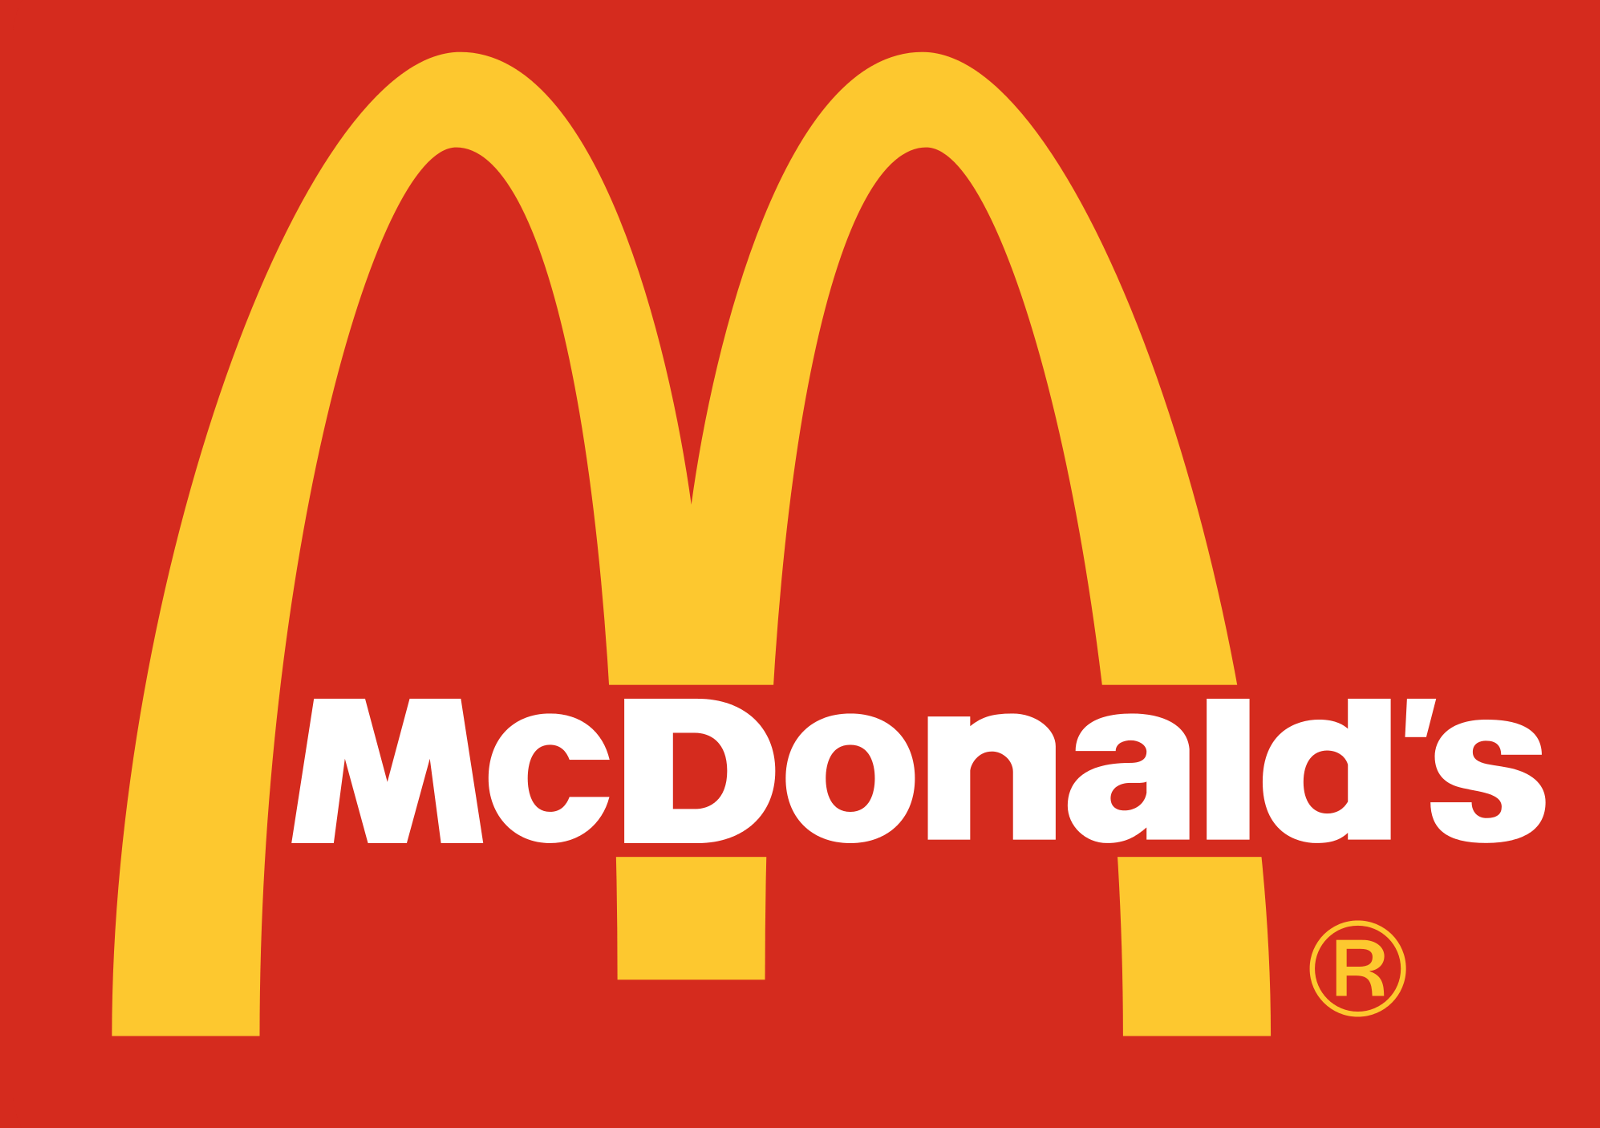 5 lessons to learn from McDonalds' marketing